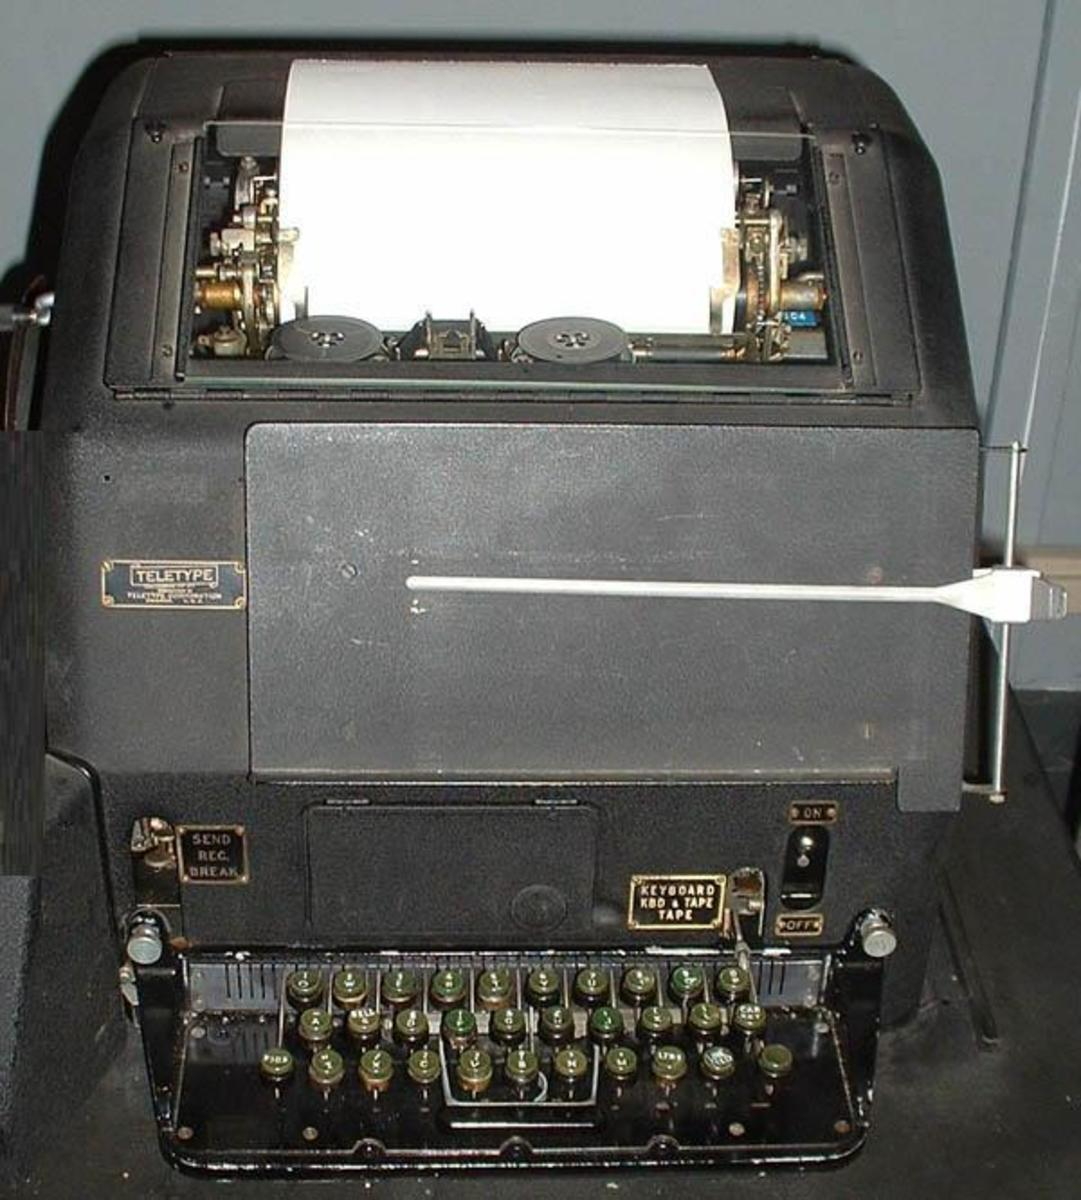 This was a transmit model.  Note the keyboard and the document holder at the front.  I wore my fingers to the knucklebones on these things some days.